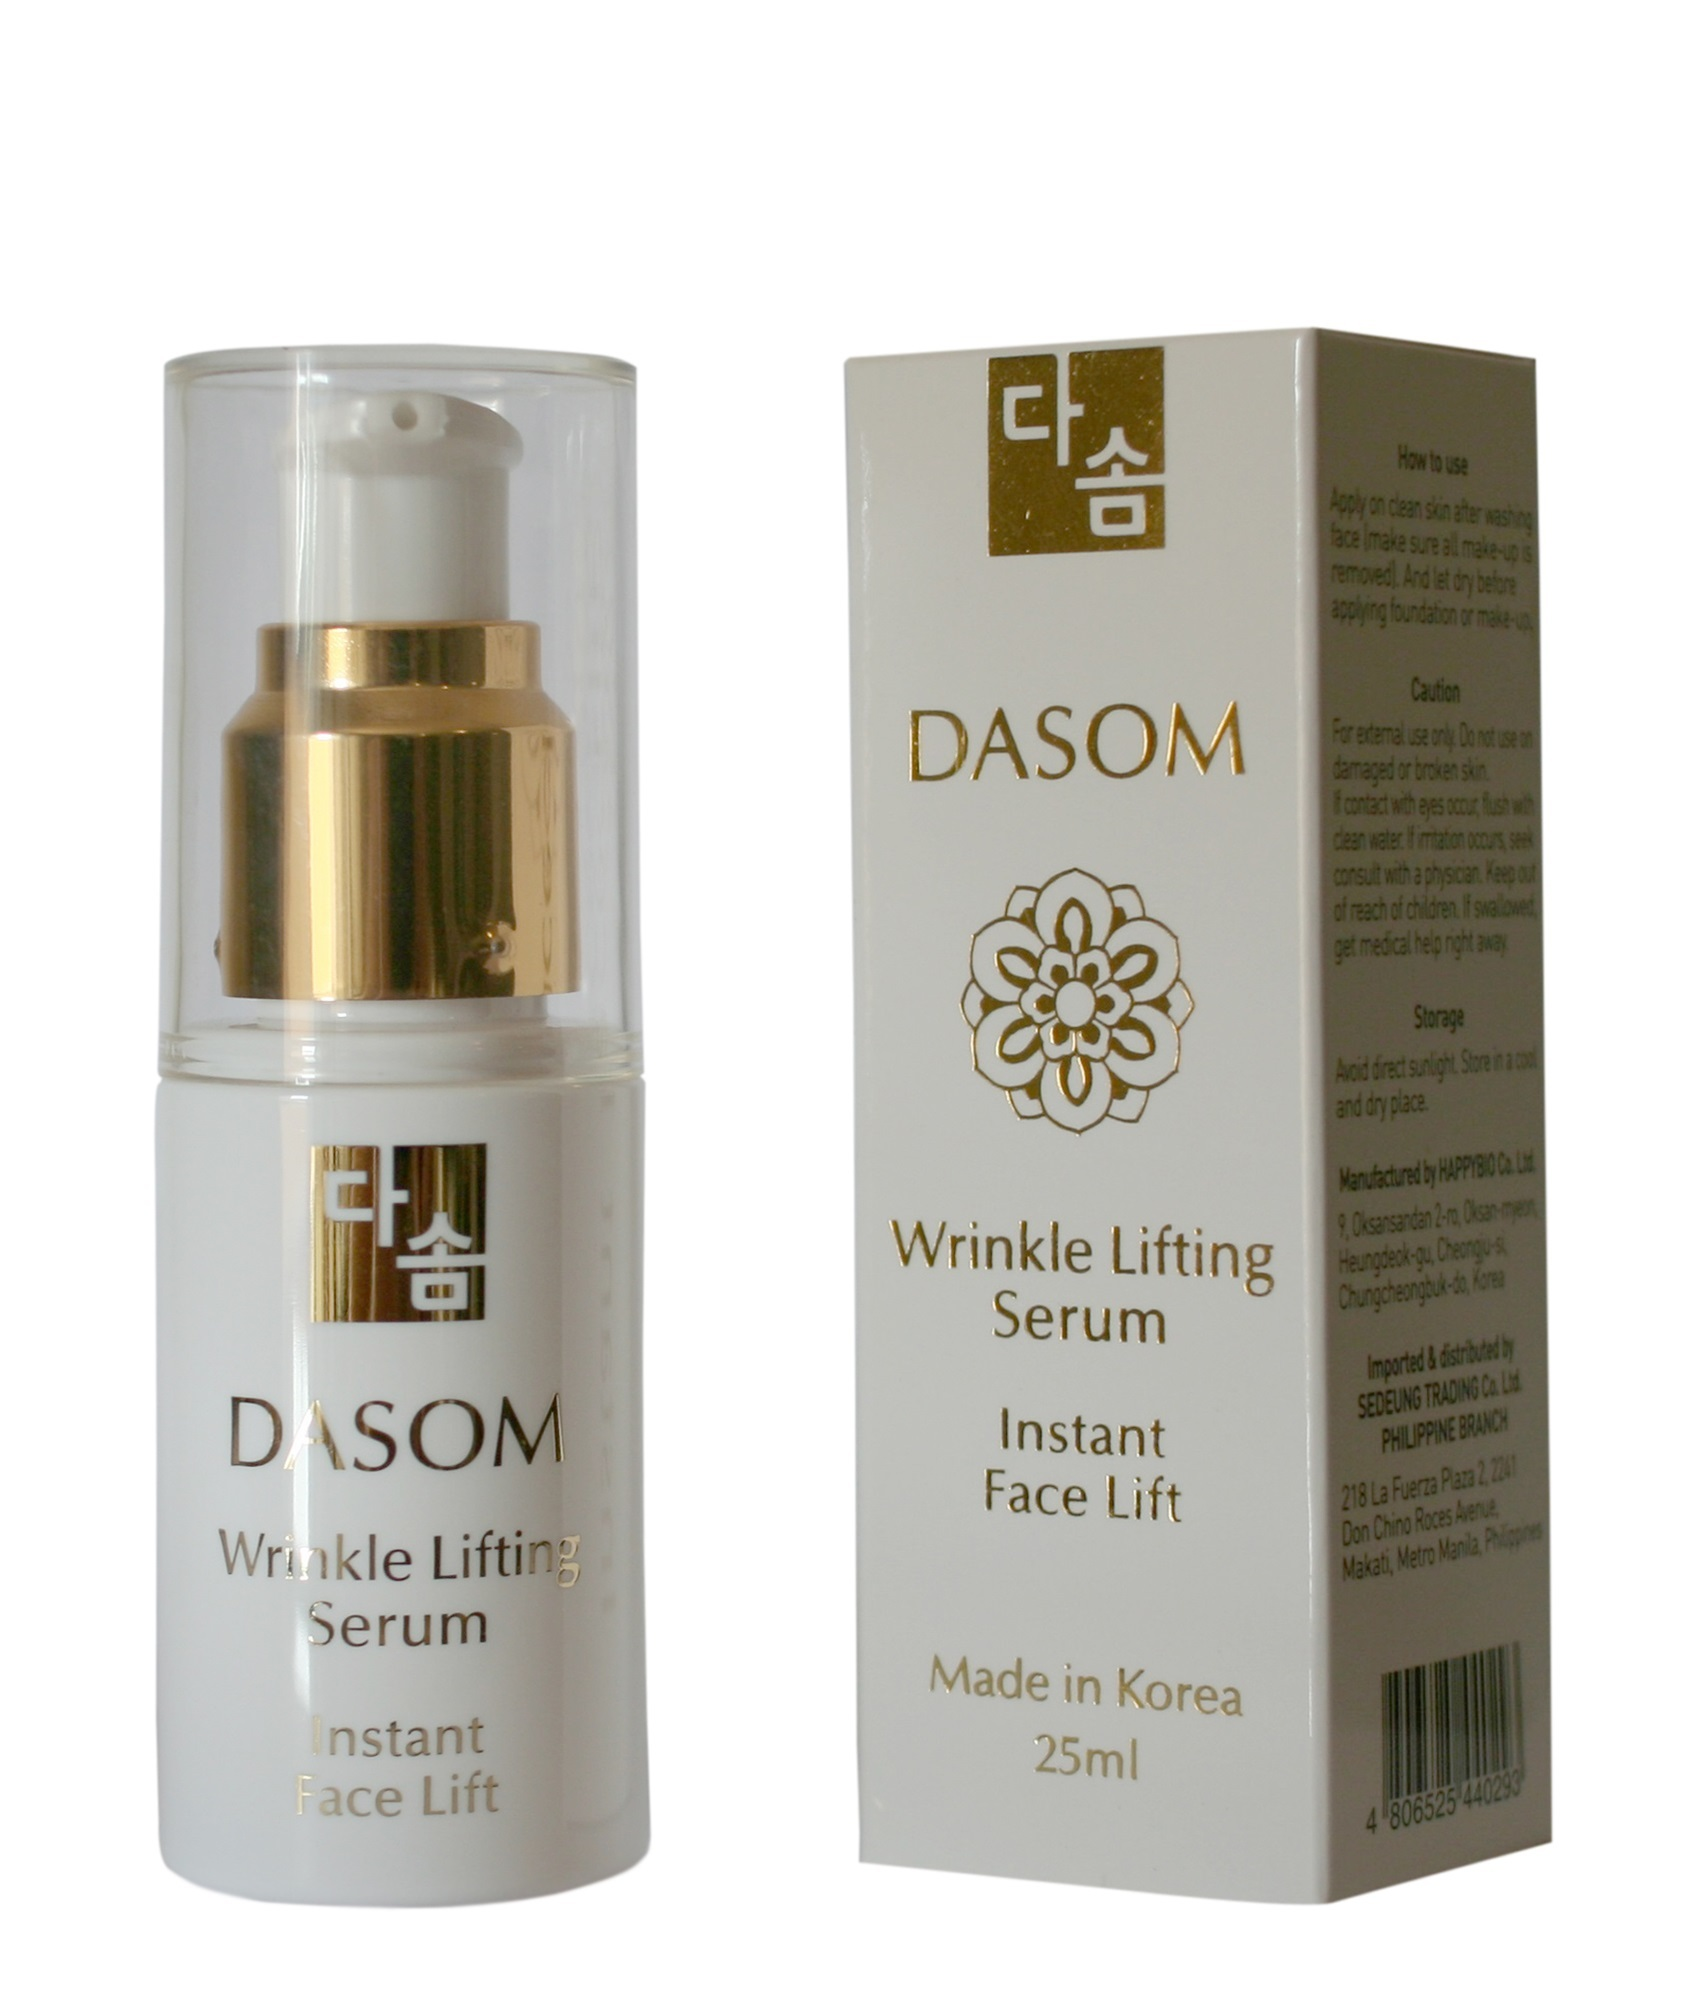 DASOM Wrinkle Lifting Serum